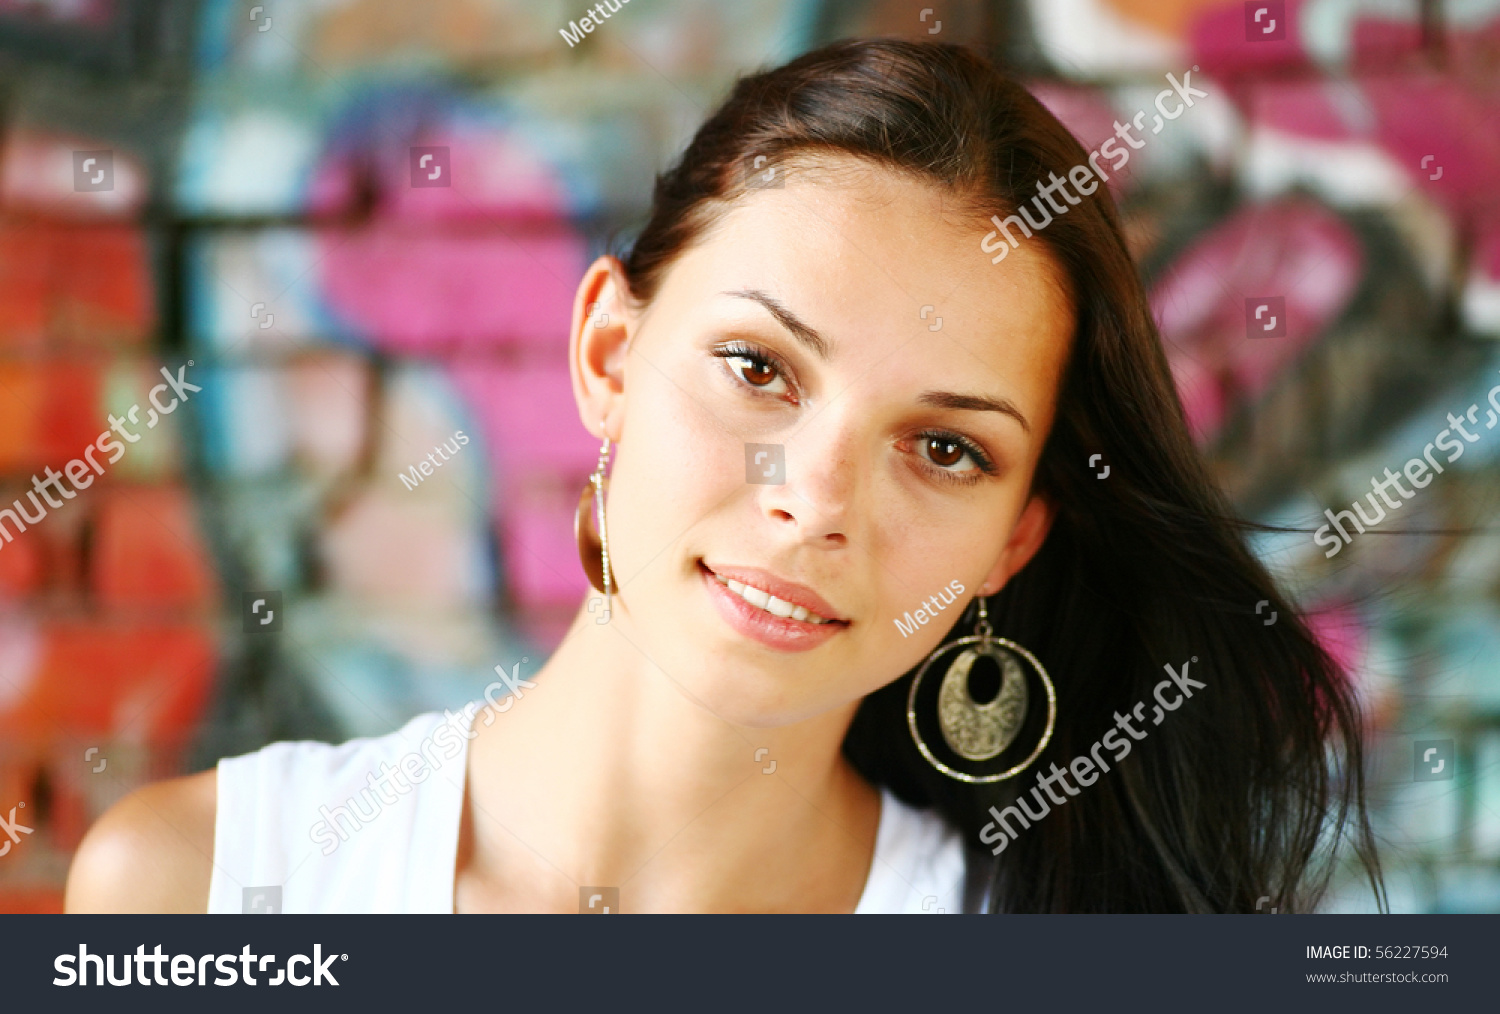 face of pretty brunette against colorful graffiti wall